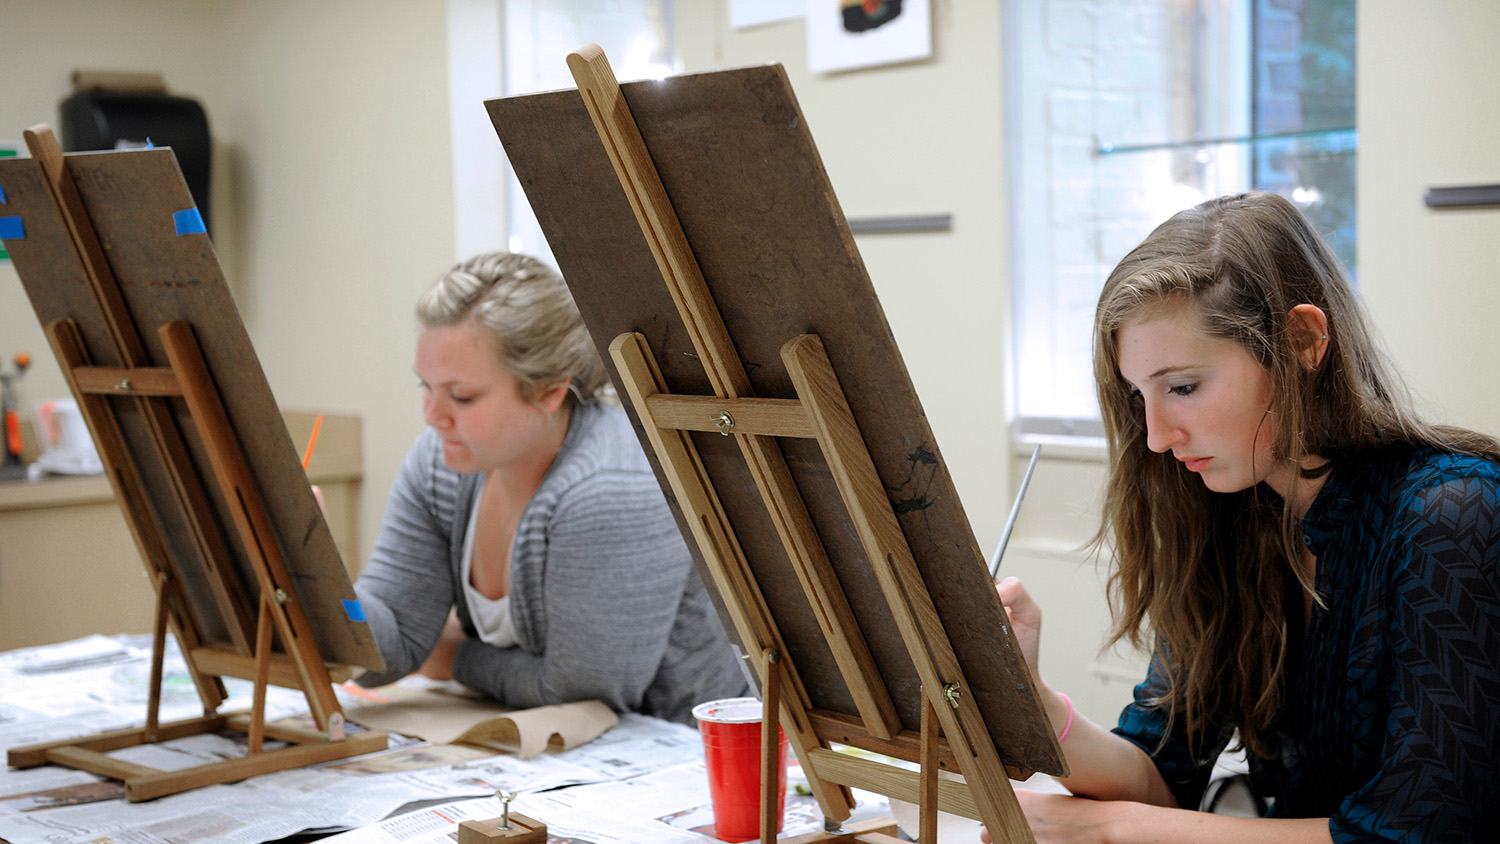 students at an easel